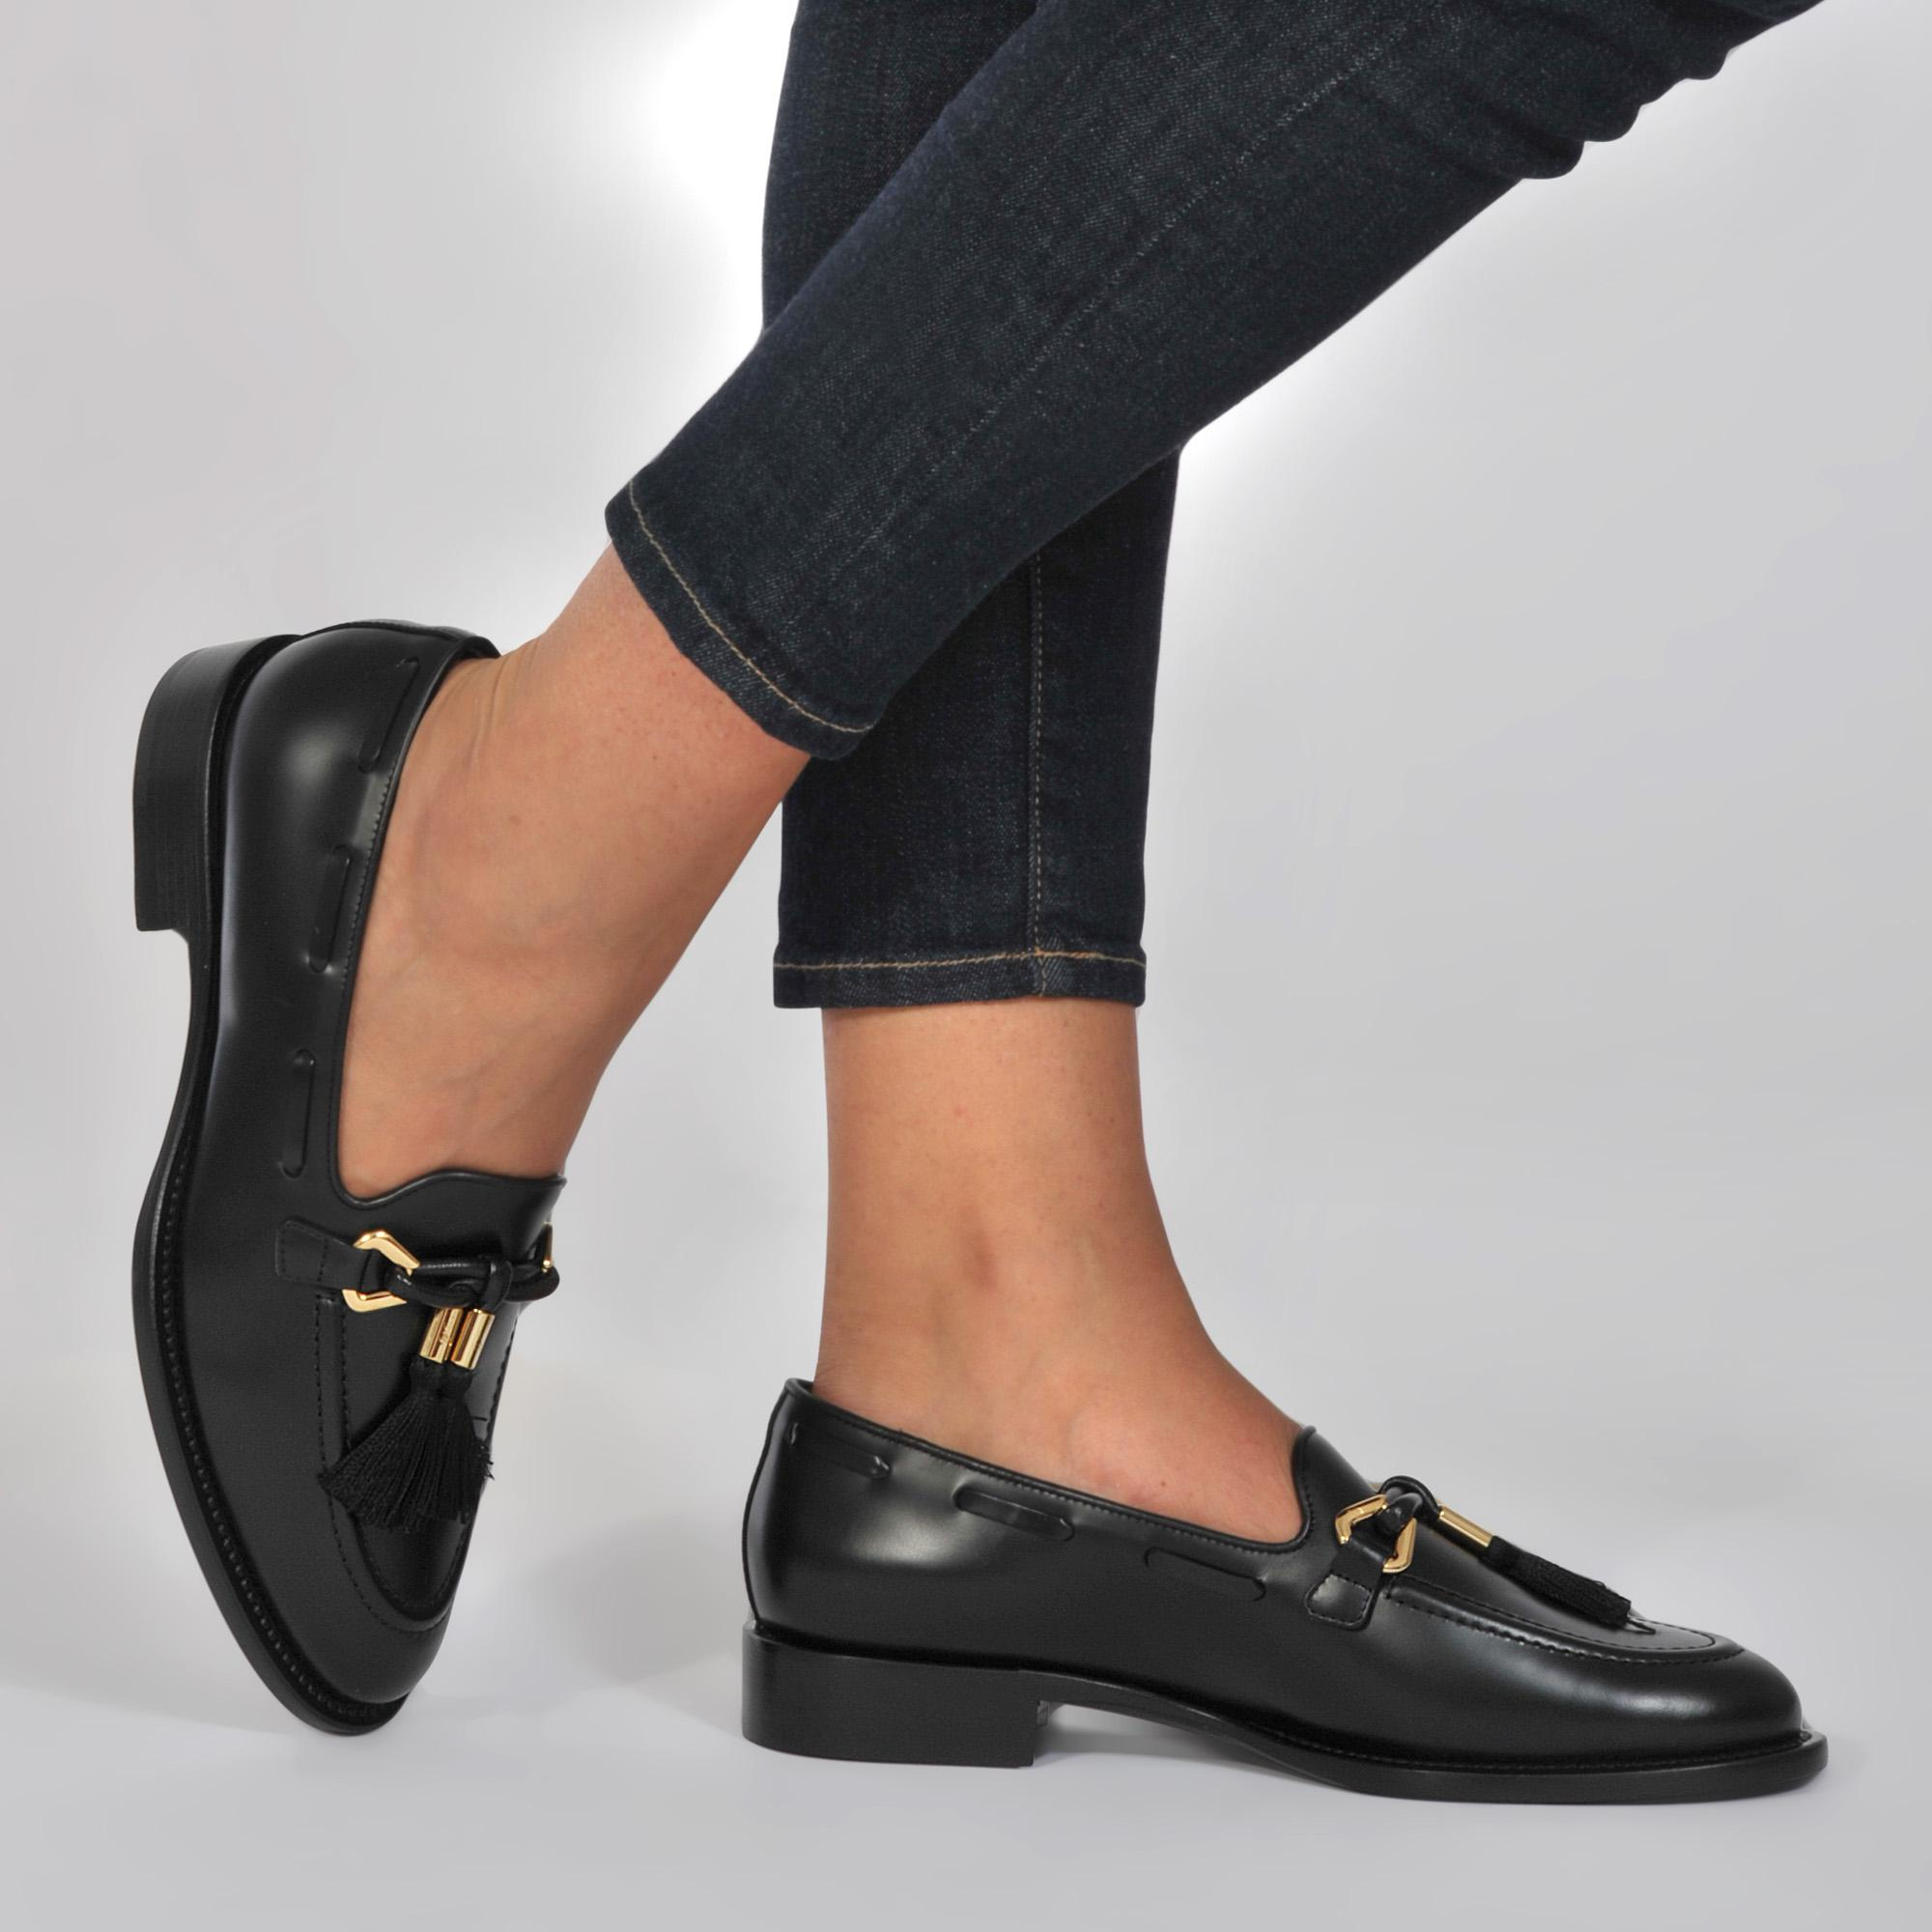 e6dc53f8a71 Giuseppe Zanotti Loafers With Tassles in Black - Lyst